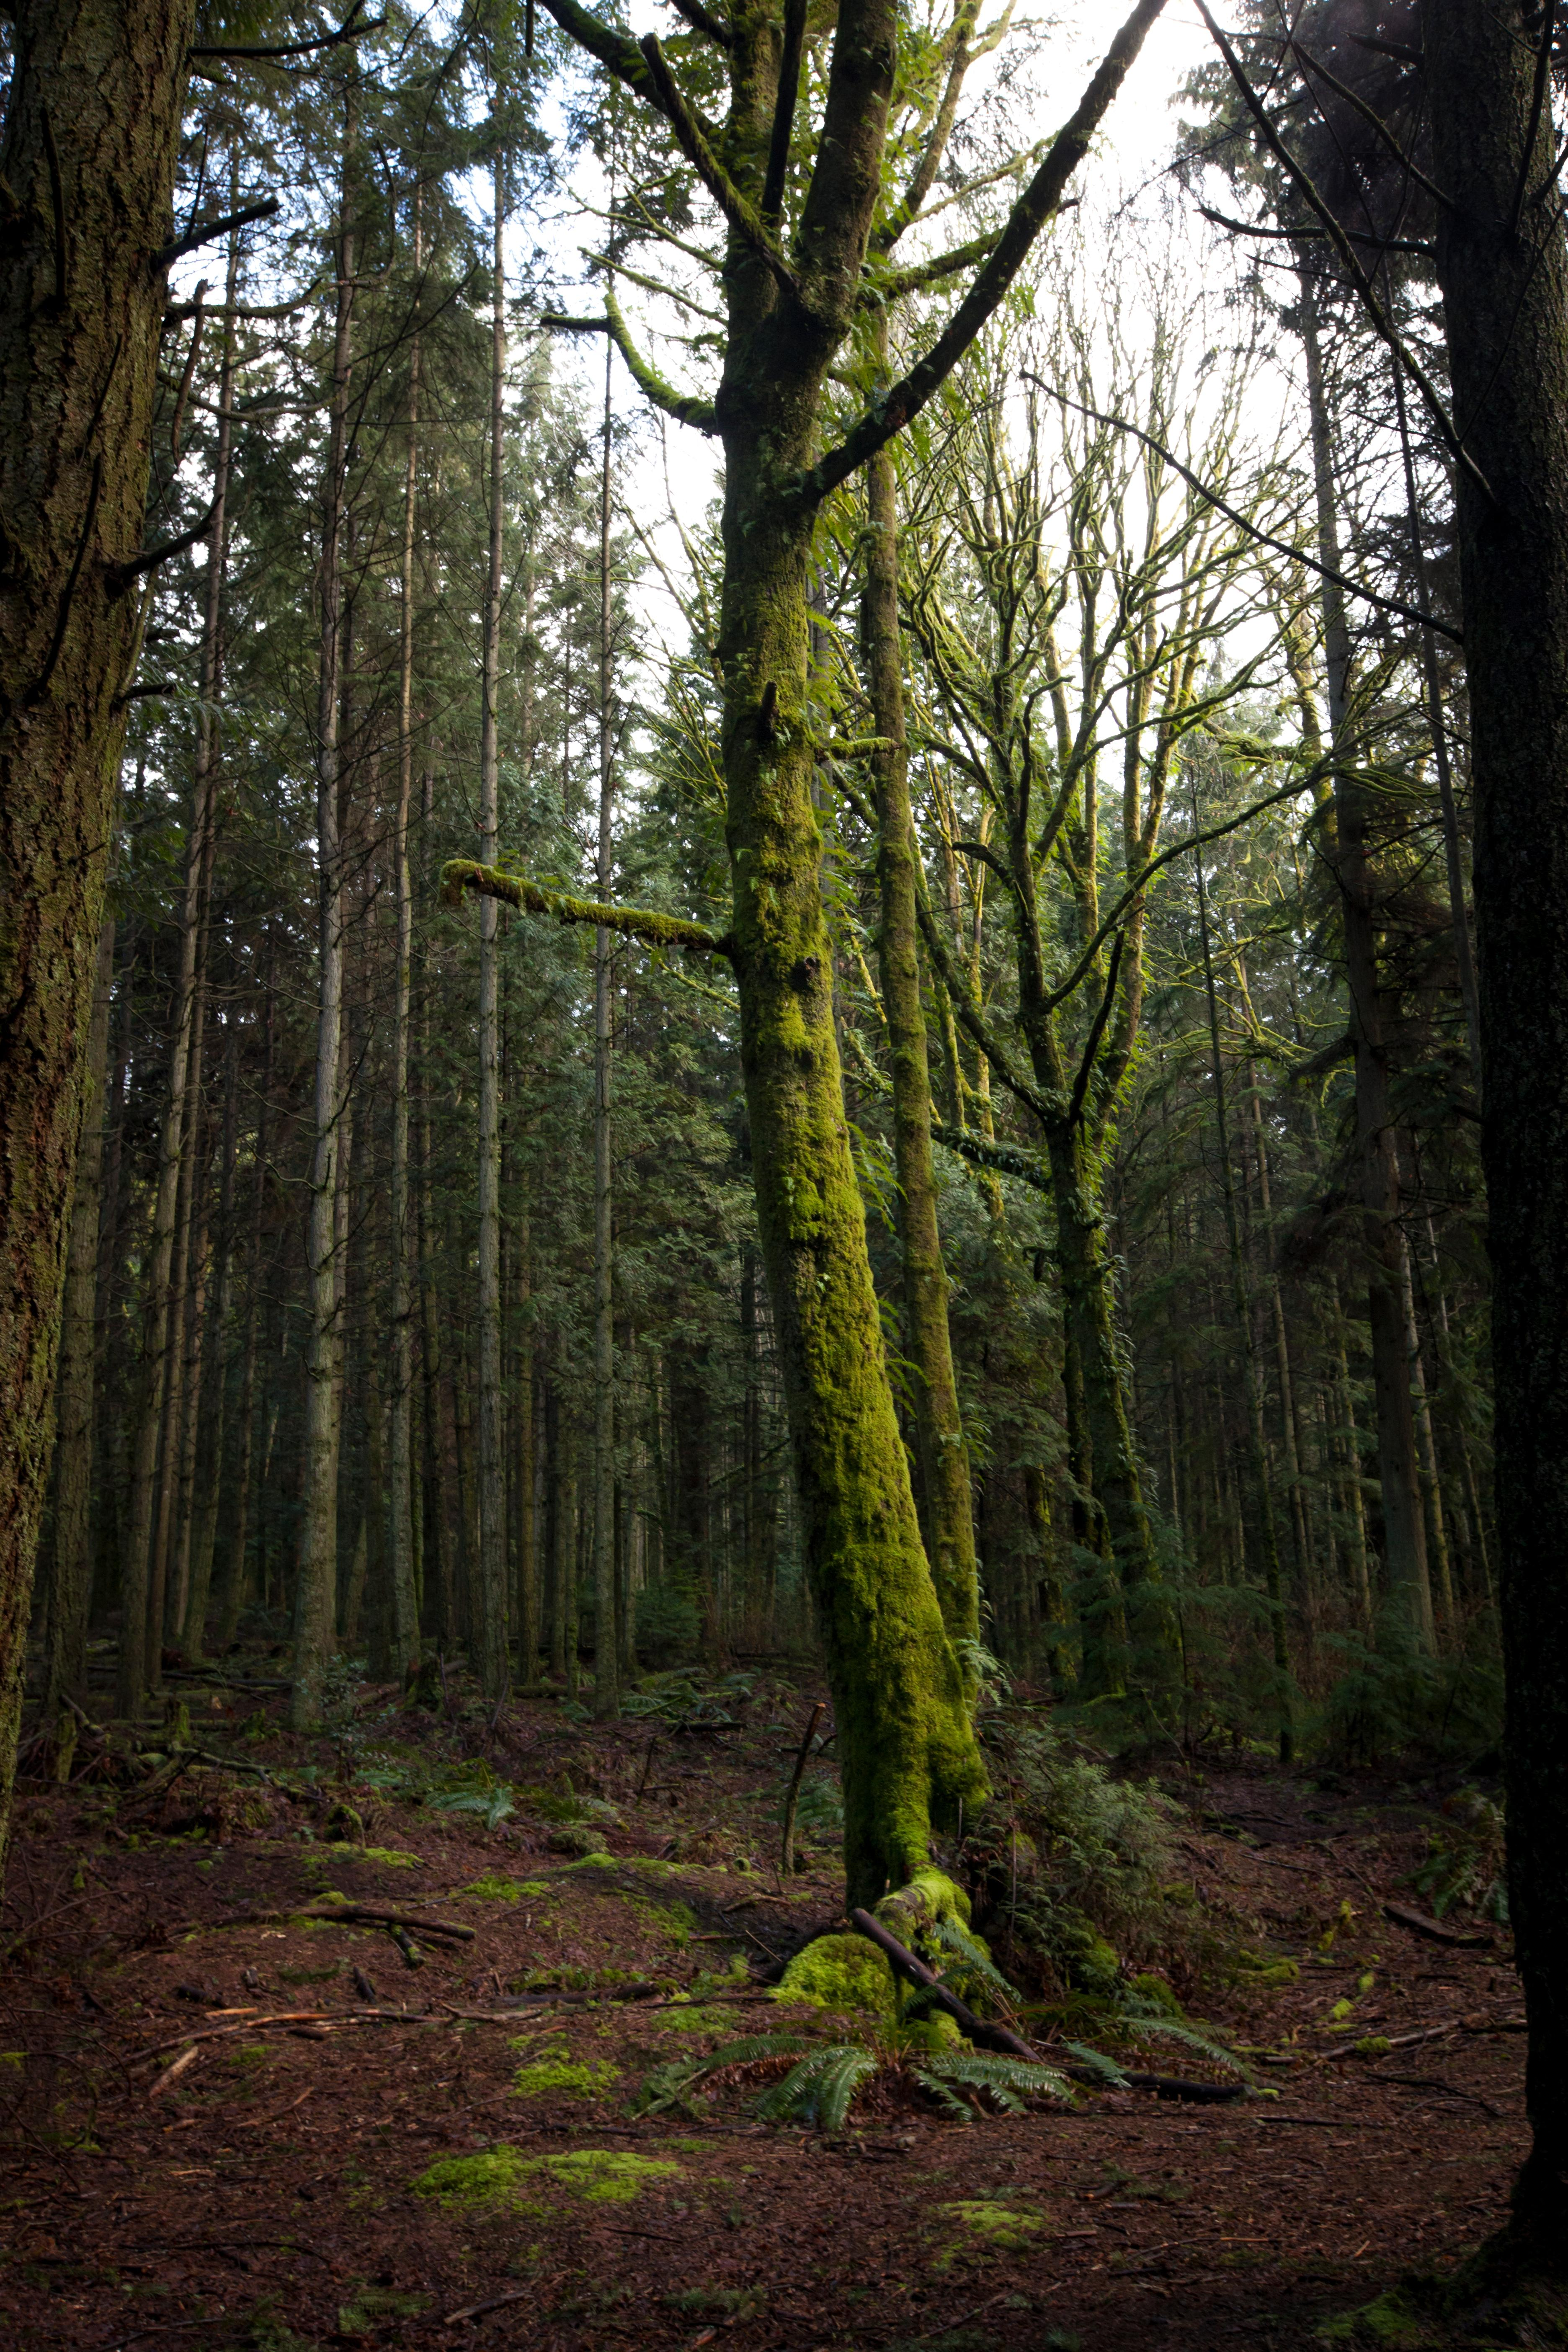 Forest networks feed rain systems